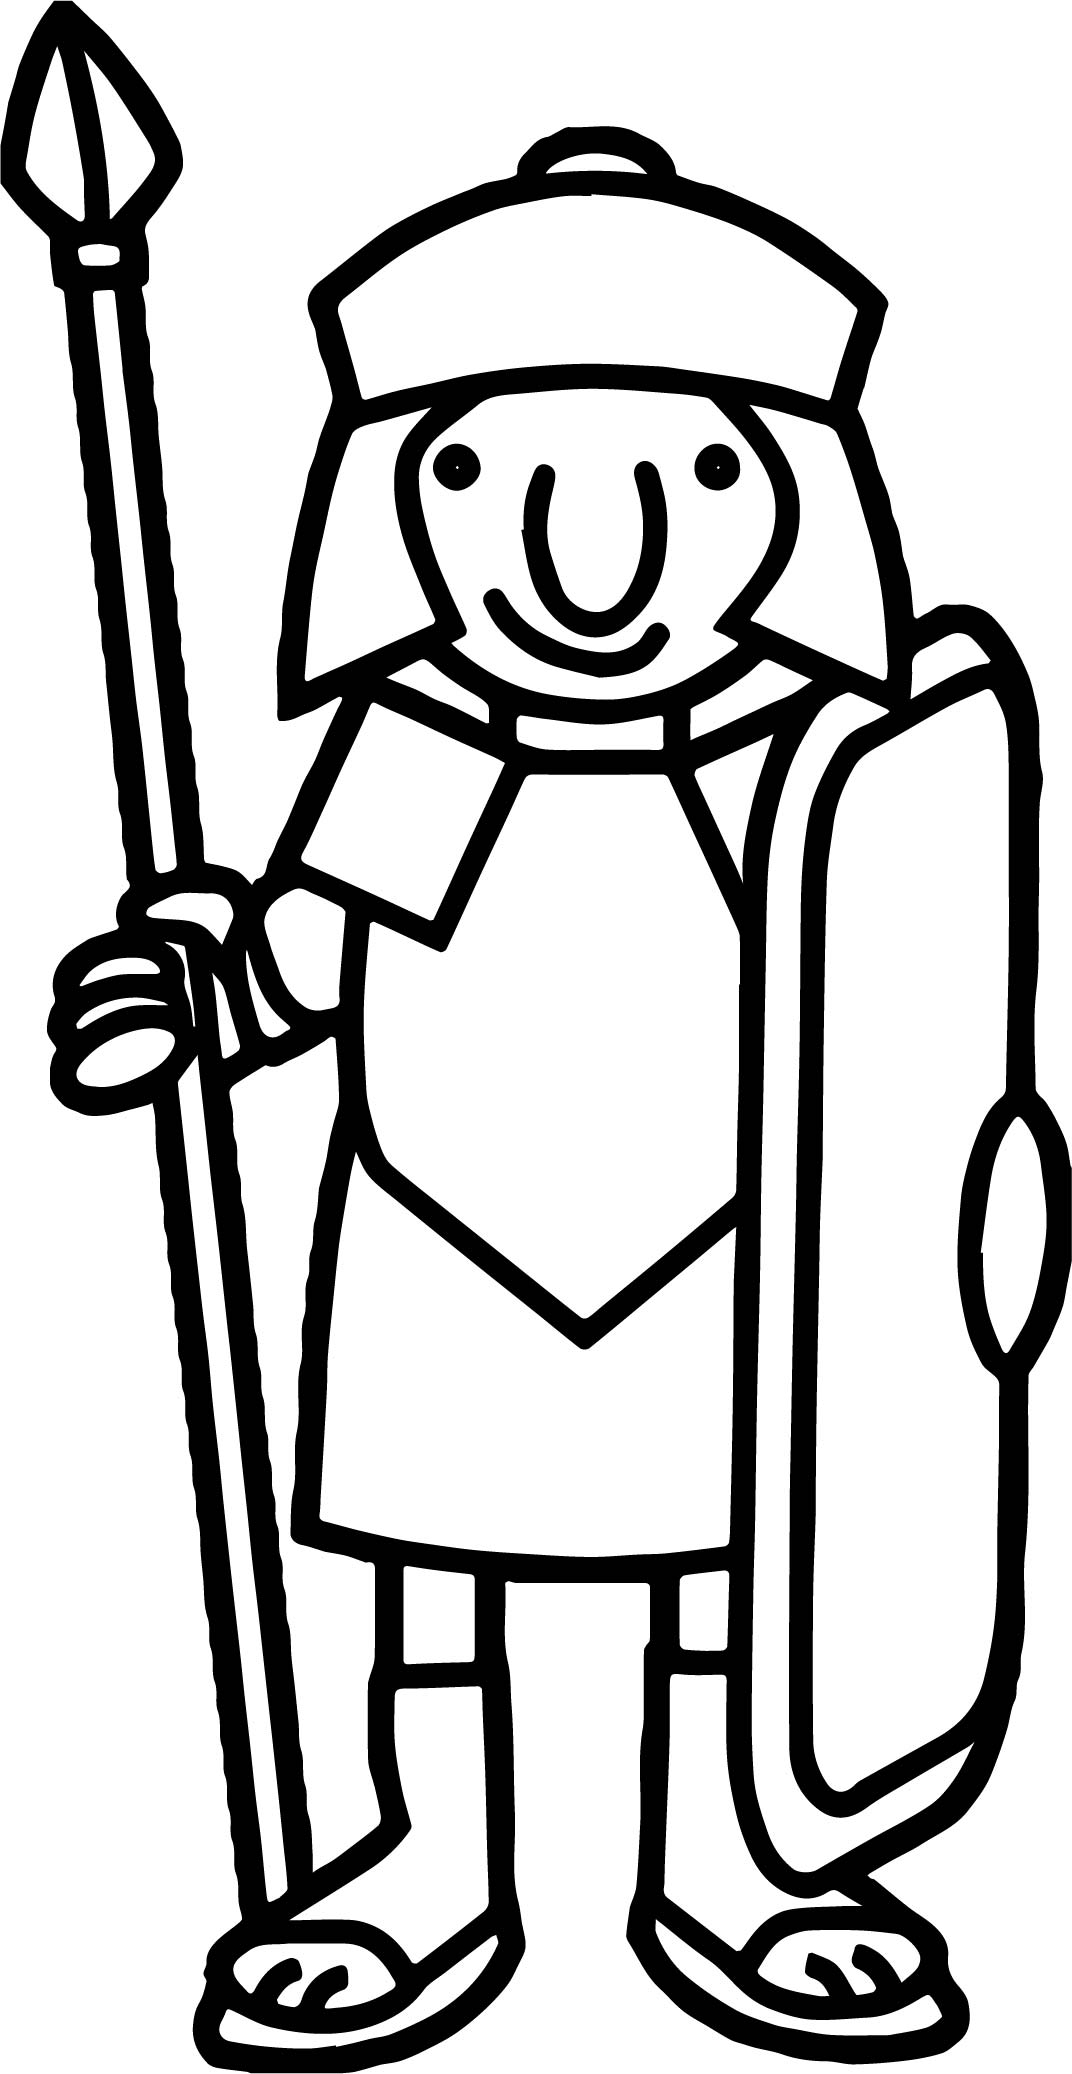 Basic Roman Soldier Coloring Page